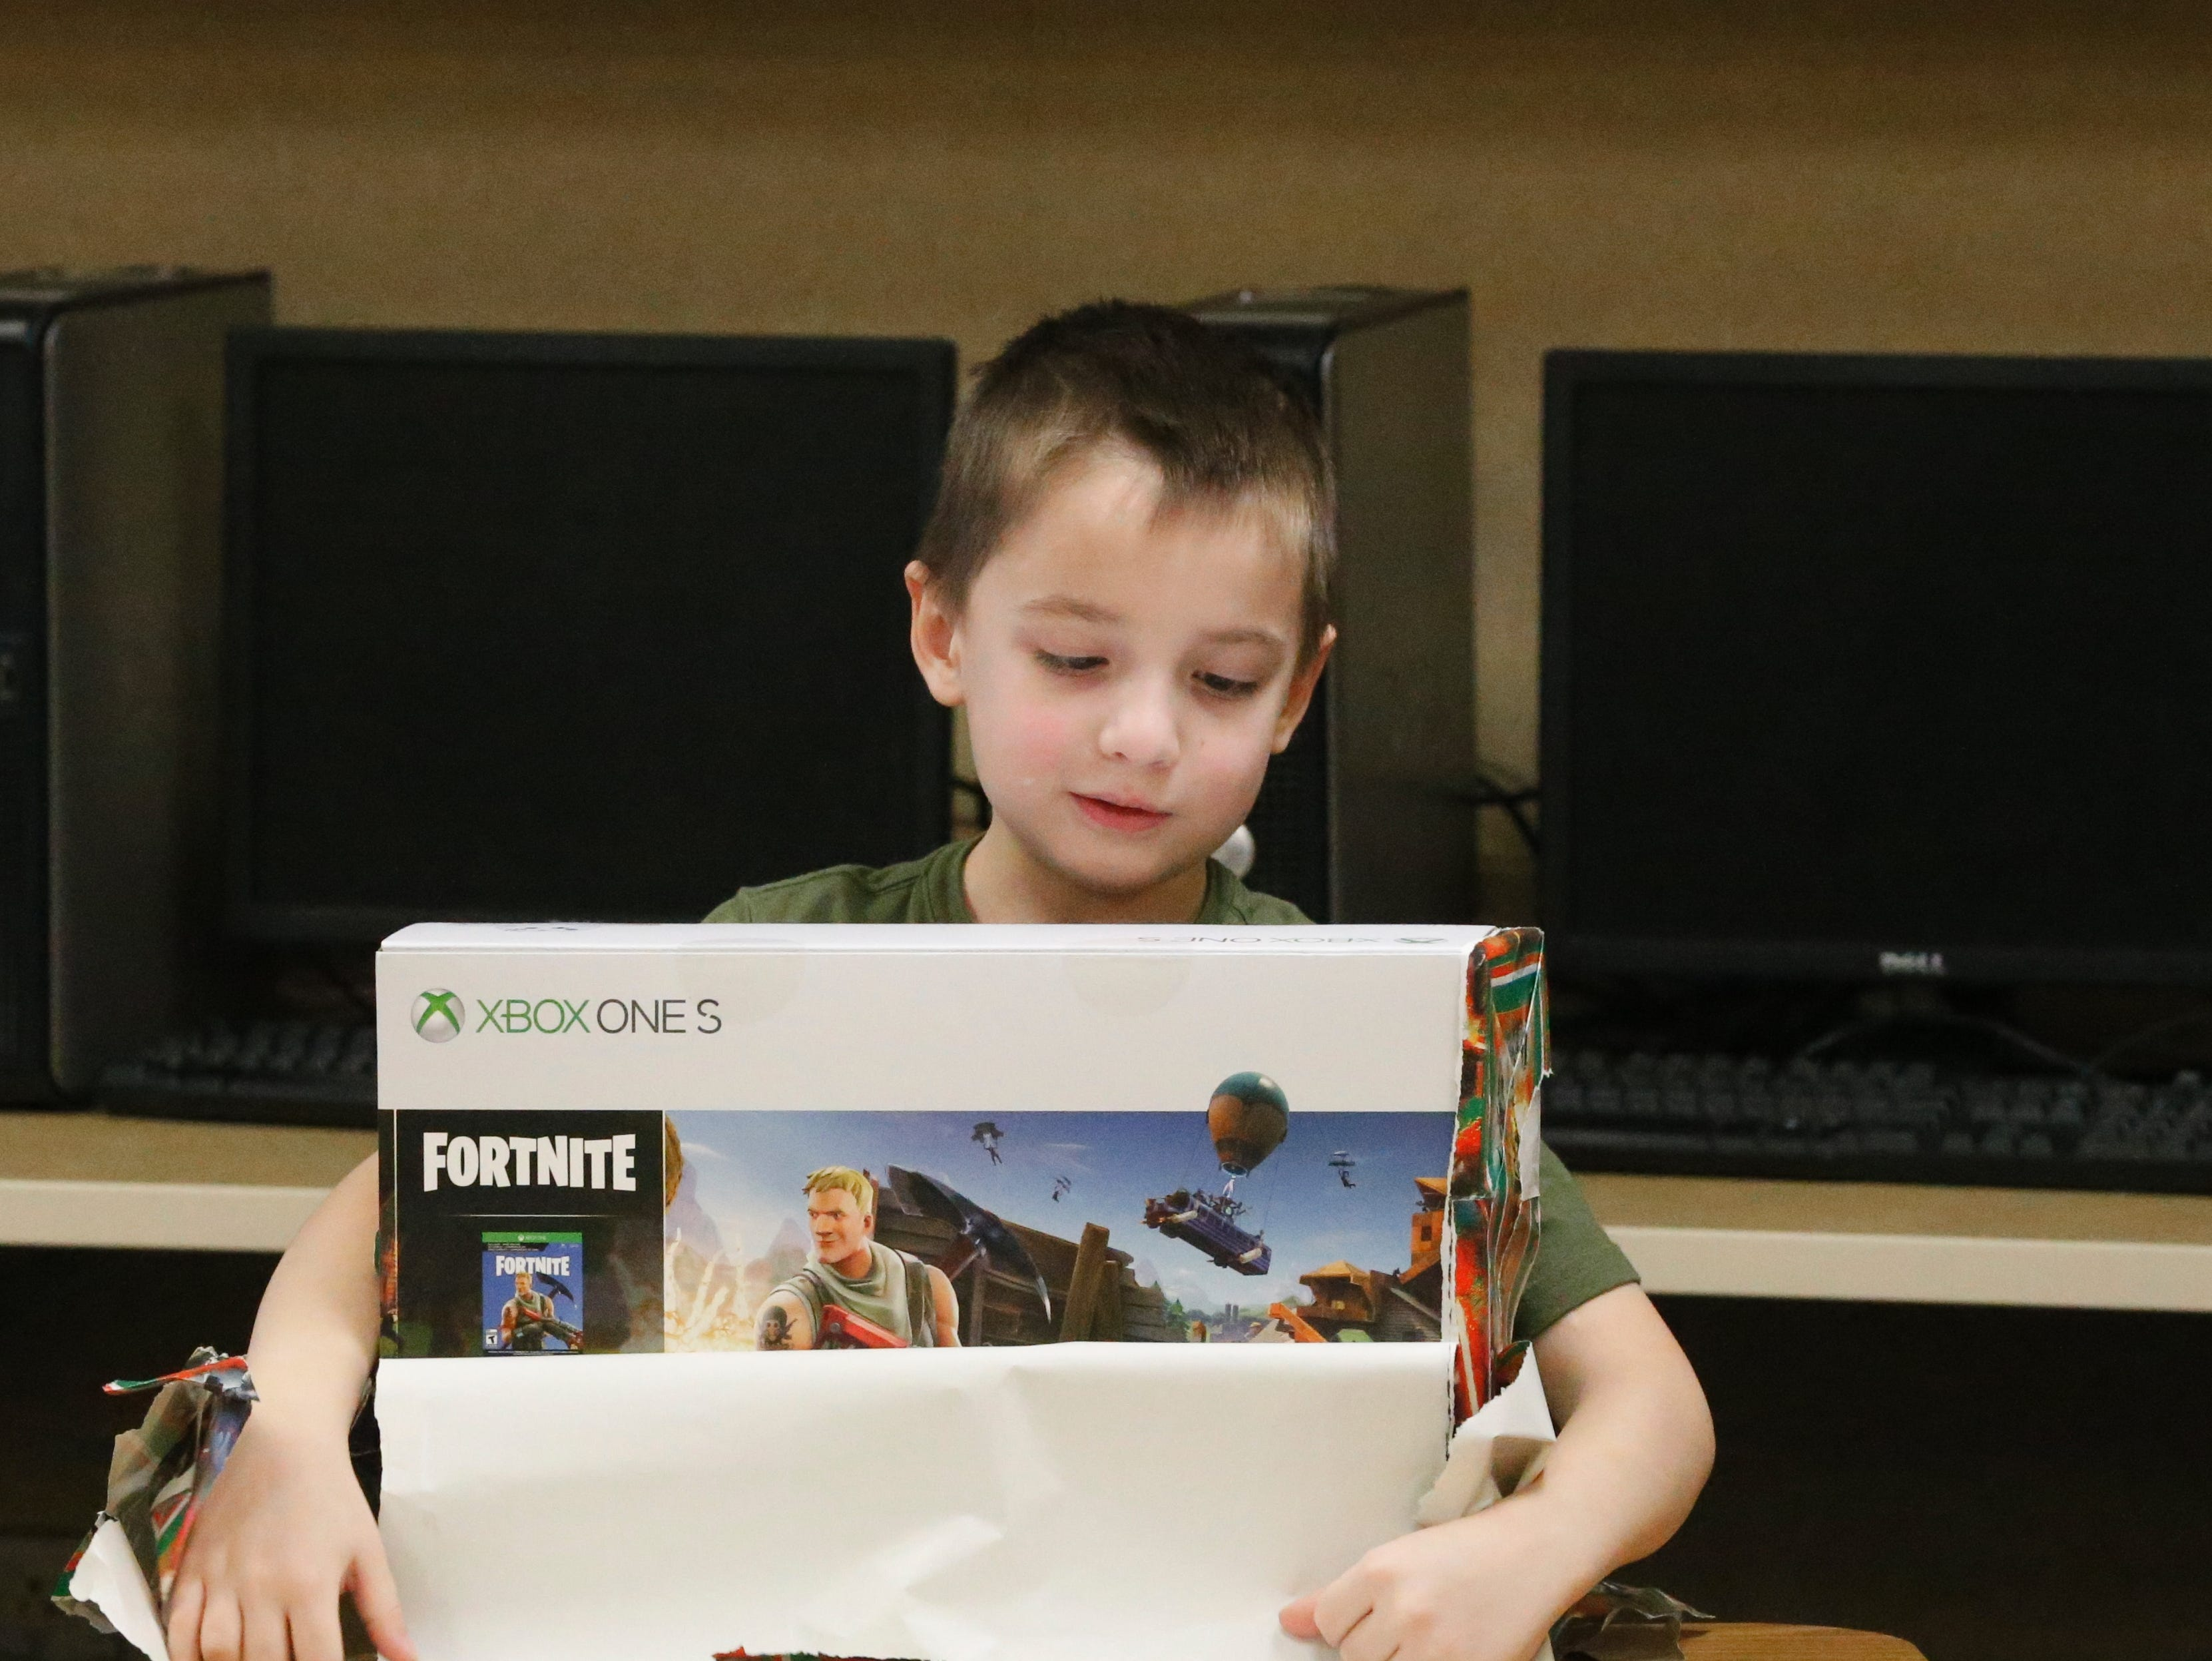 Ryan Idle, a kindergartner at Fairview Elementary School in Richmond, opens a gift Jan. 7, 2019. Ryan and his older brother, Joshua, were surprised with an Xbox One S purchased by Joshua's classmates with money raised from a store created by Javeonte Johnson and D. J. Allen, who sold pictures to raise money for Idle. Idle was involved in an accident and lost his mom in Dec. 2018.